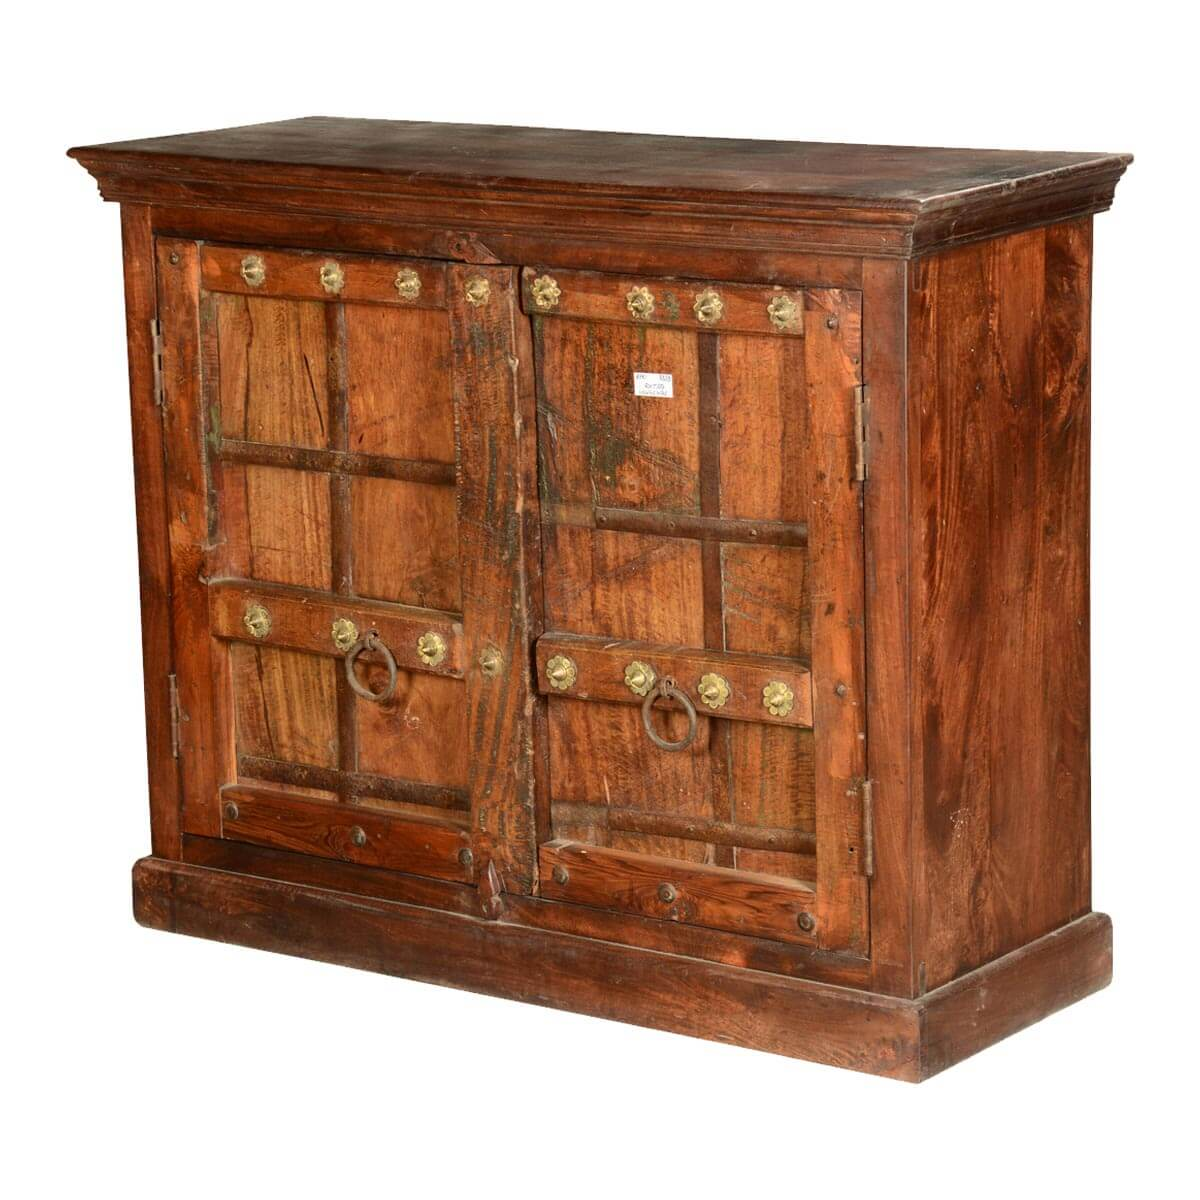 Nottingham rustic reclaimed wood handcrafted storage cabinet hover to zoom